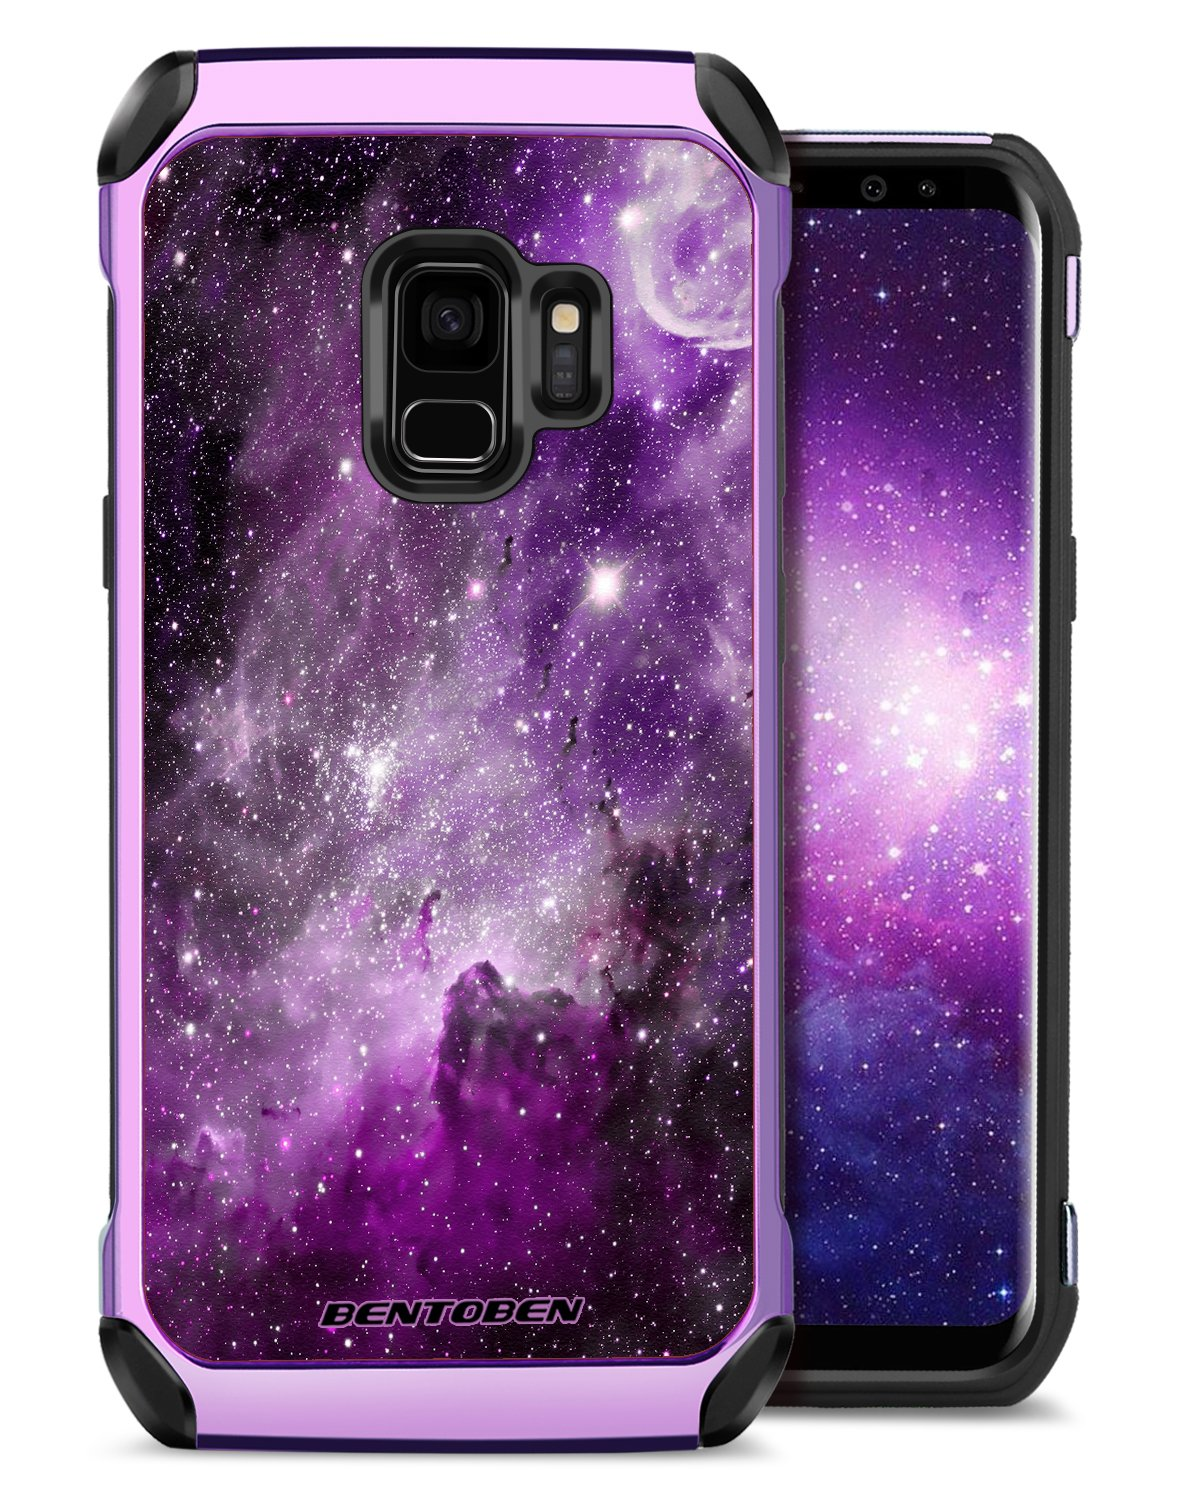 S9 Case, Galaxy S9 Case, Samsung S9 Case Purple, BENTOBEN Samsung Galaxy S9 Cover for Girls Women Slim Thin Fit Dual Layer Hybrid Hard PC Laminated with Palm Leaves Pattern Design Faux Leather Cover Rugged TPU Bumper Shockproof Protective Phone Cases for S